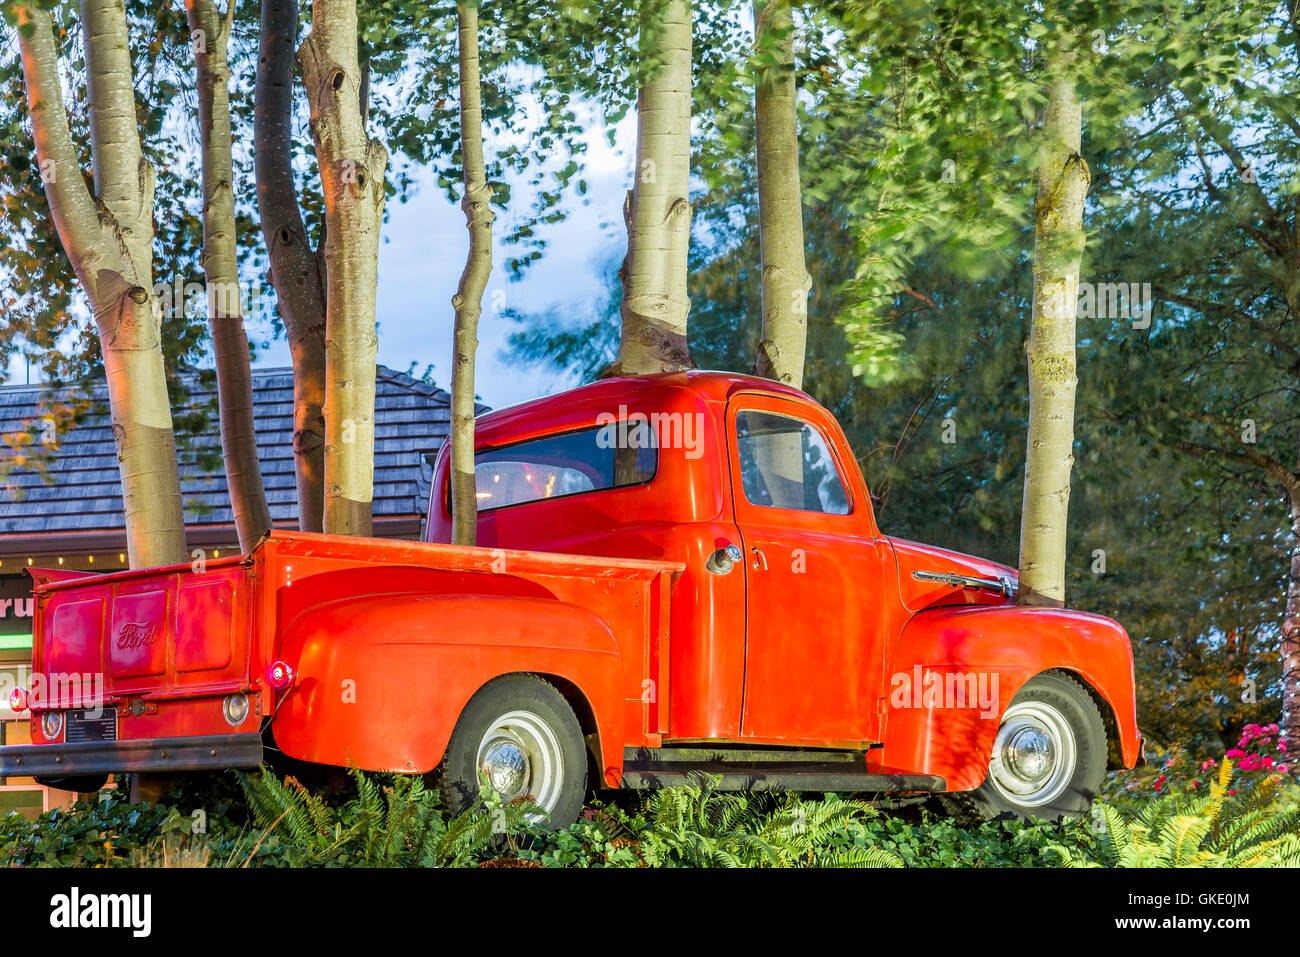 Red Pickup Truck Stock Photos Images Alamy 1951 52 Ford Pick Up Art Installation Called Grove Encroached Upon By